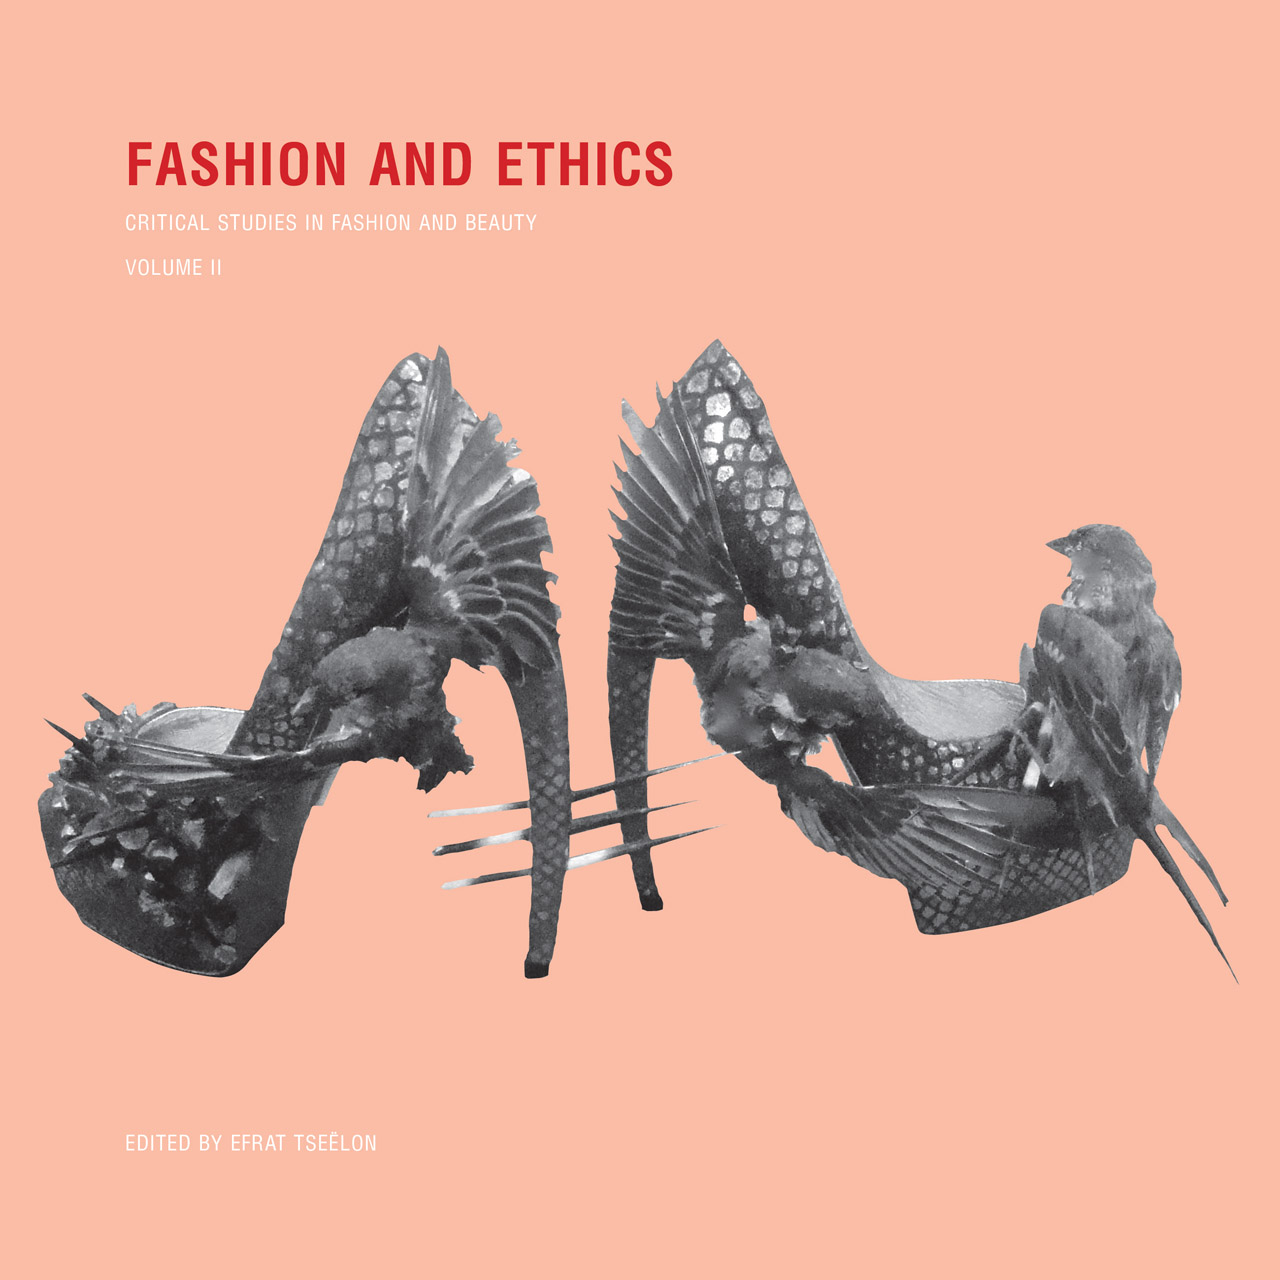 Fashion and Ethics: Critical Studies in Fashion and Beauty, Volume II